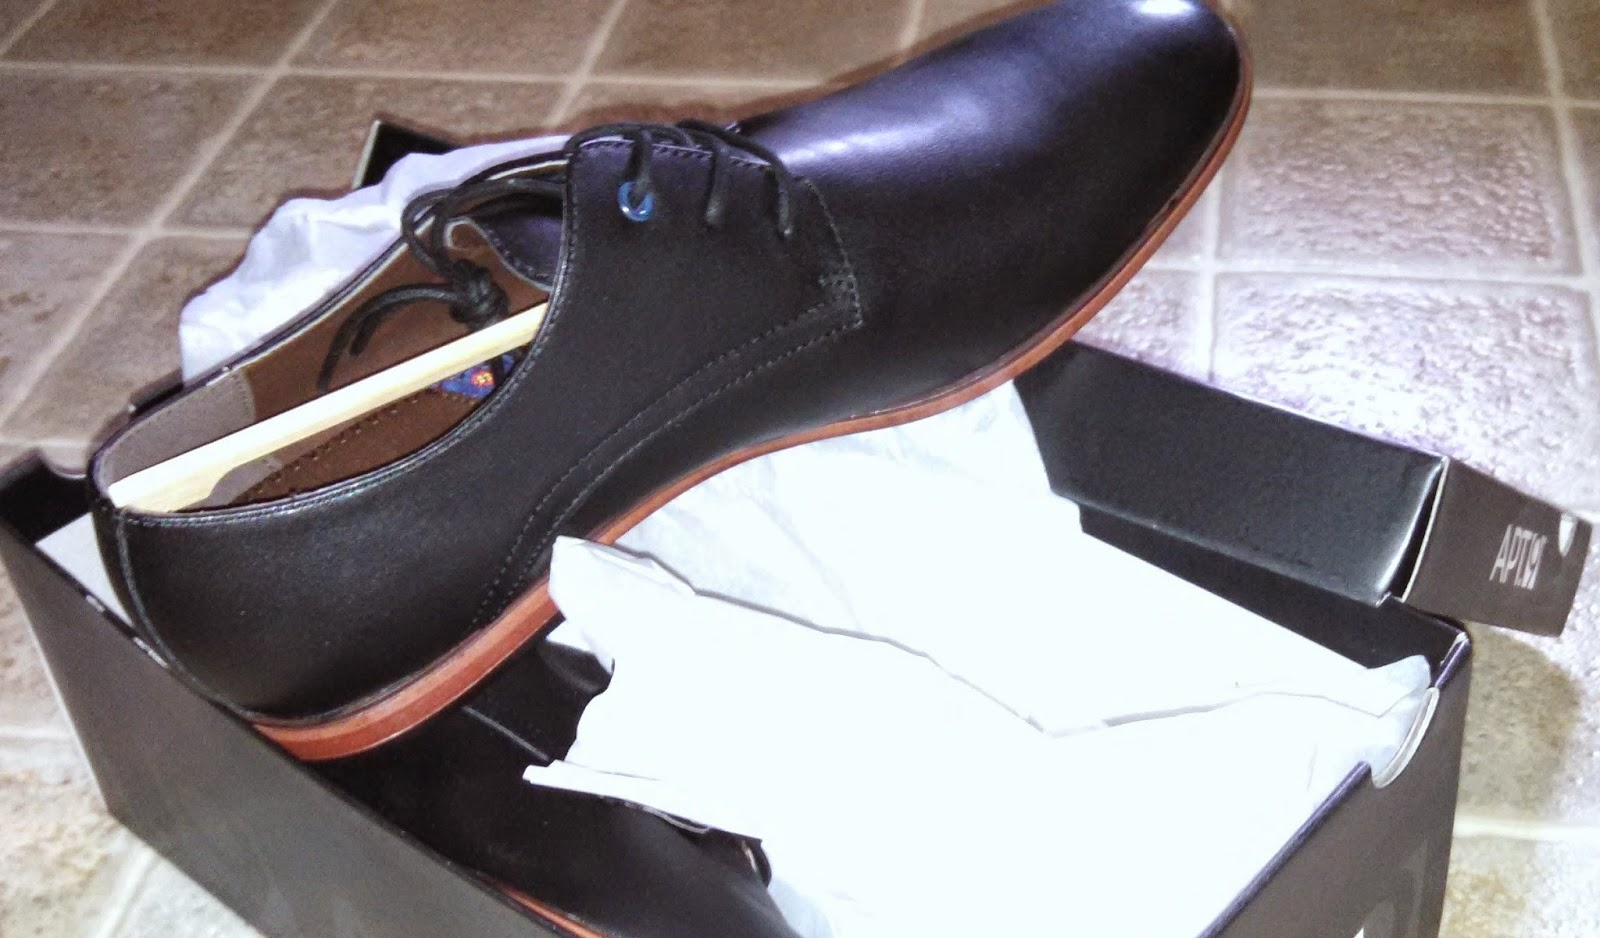 My new cheap dress shoes- under $25 for the pair!